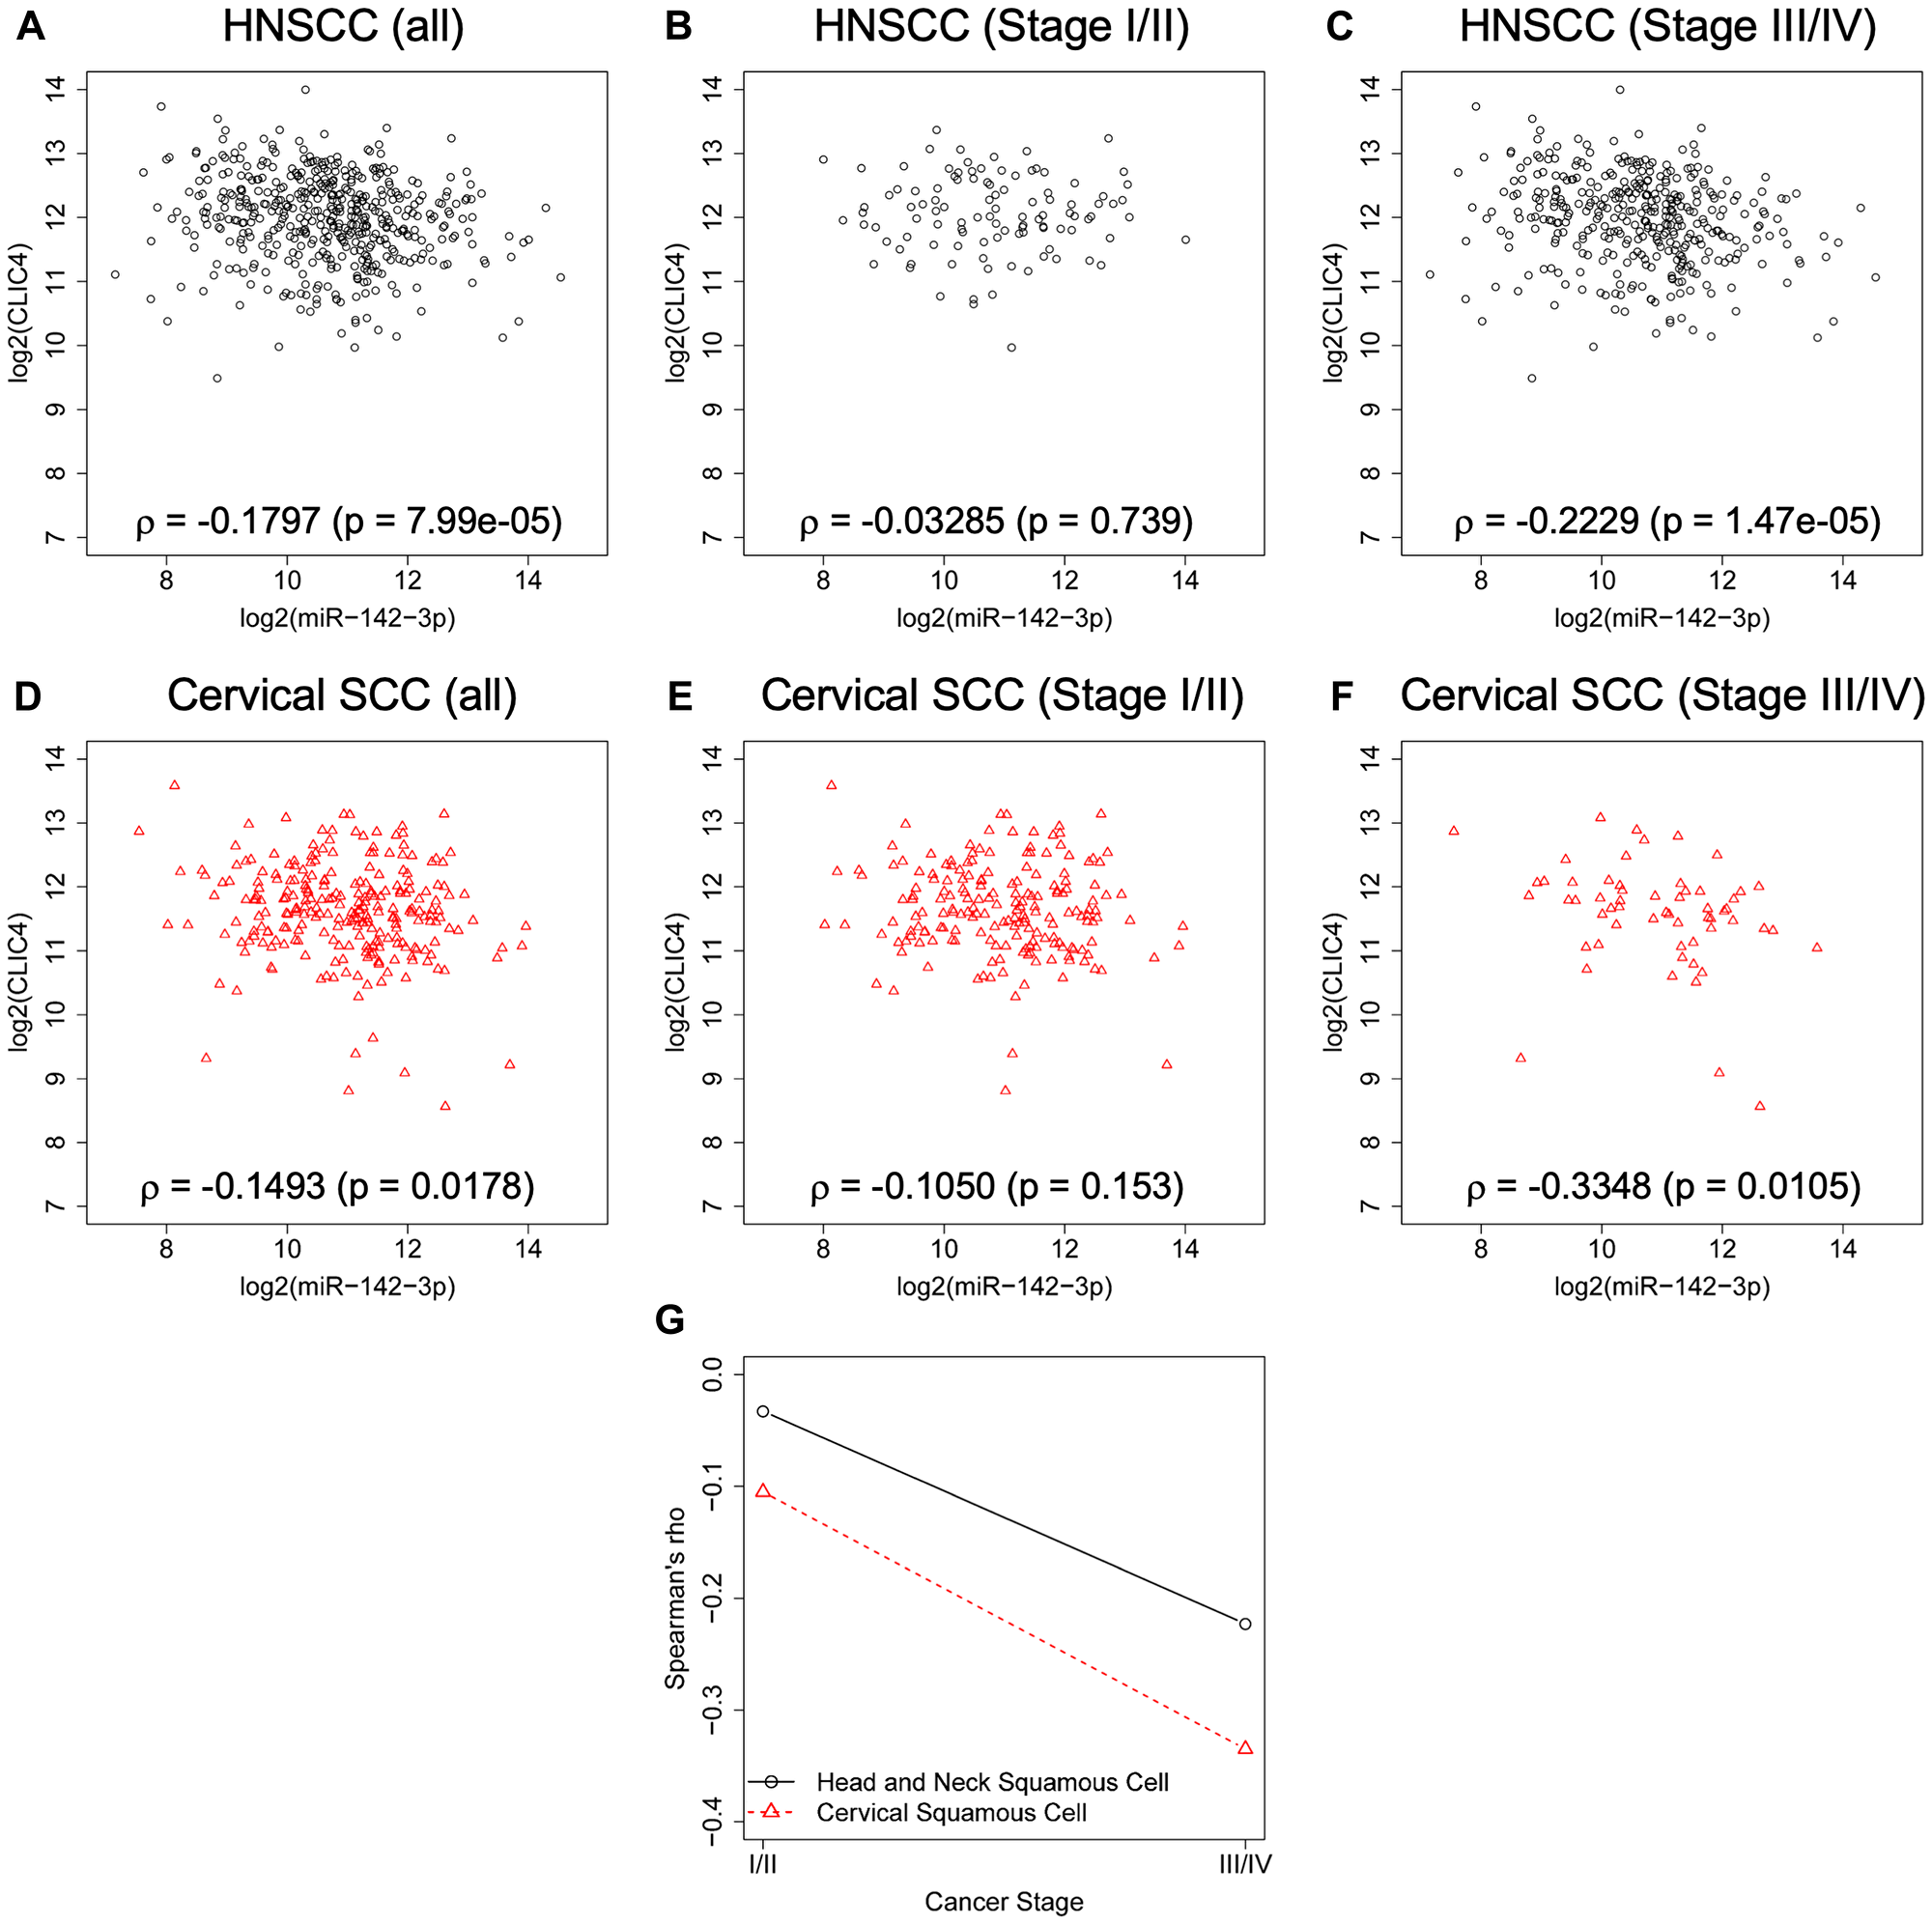 CLIC4 and miR-142-3p are inversely related in advanced squamous cell cancers.